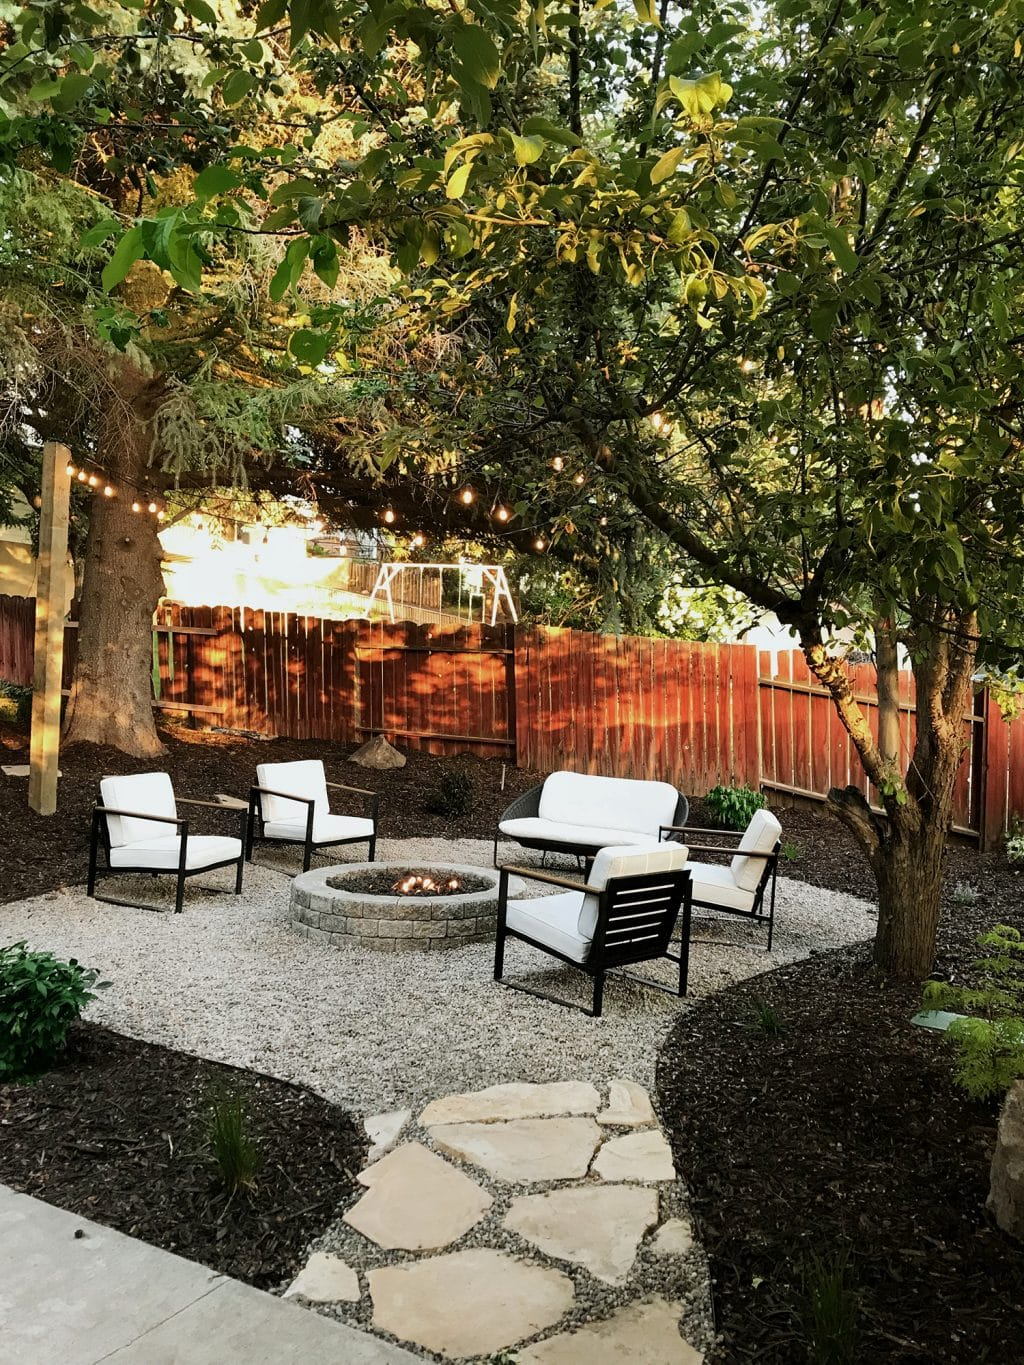 24 Cheap Backyard Makeover Ideas You'll Love | Extra Space ... |Backyard Makeovers